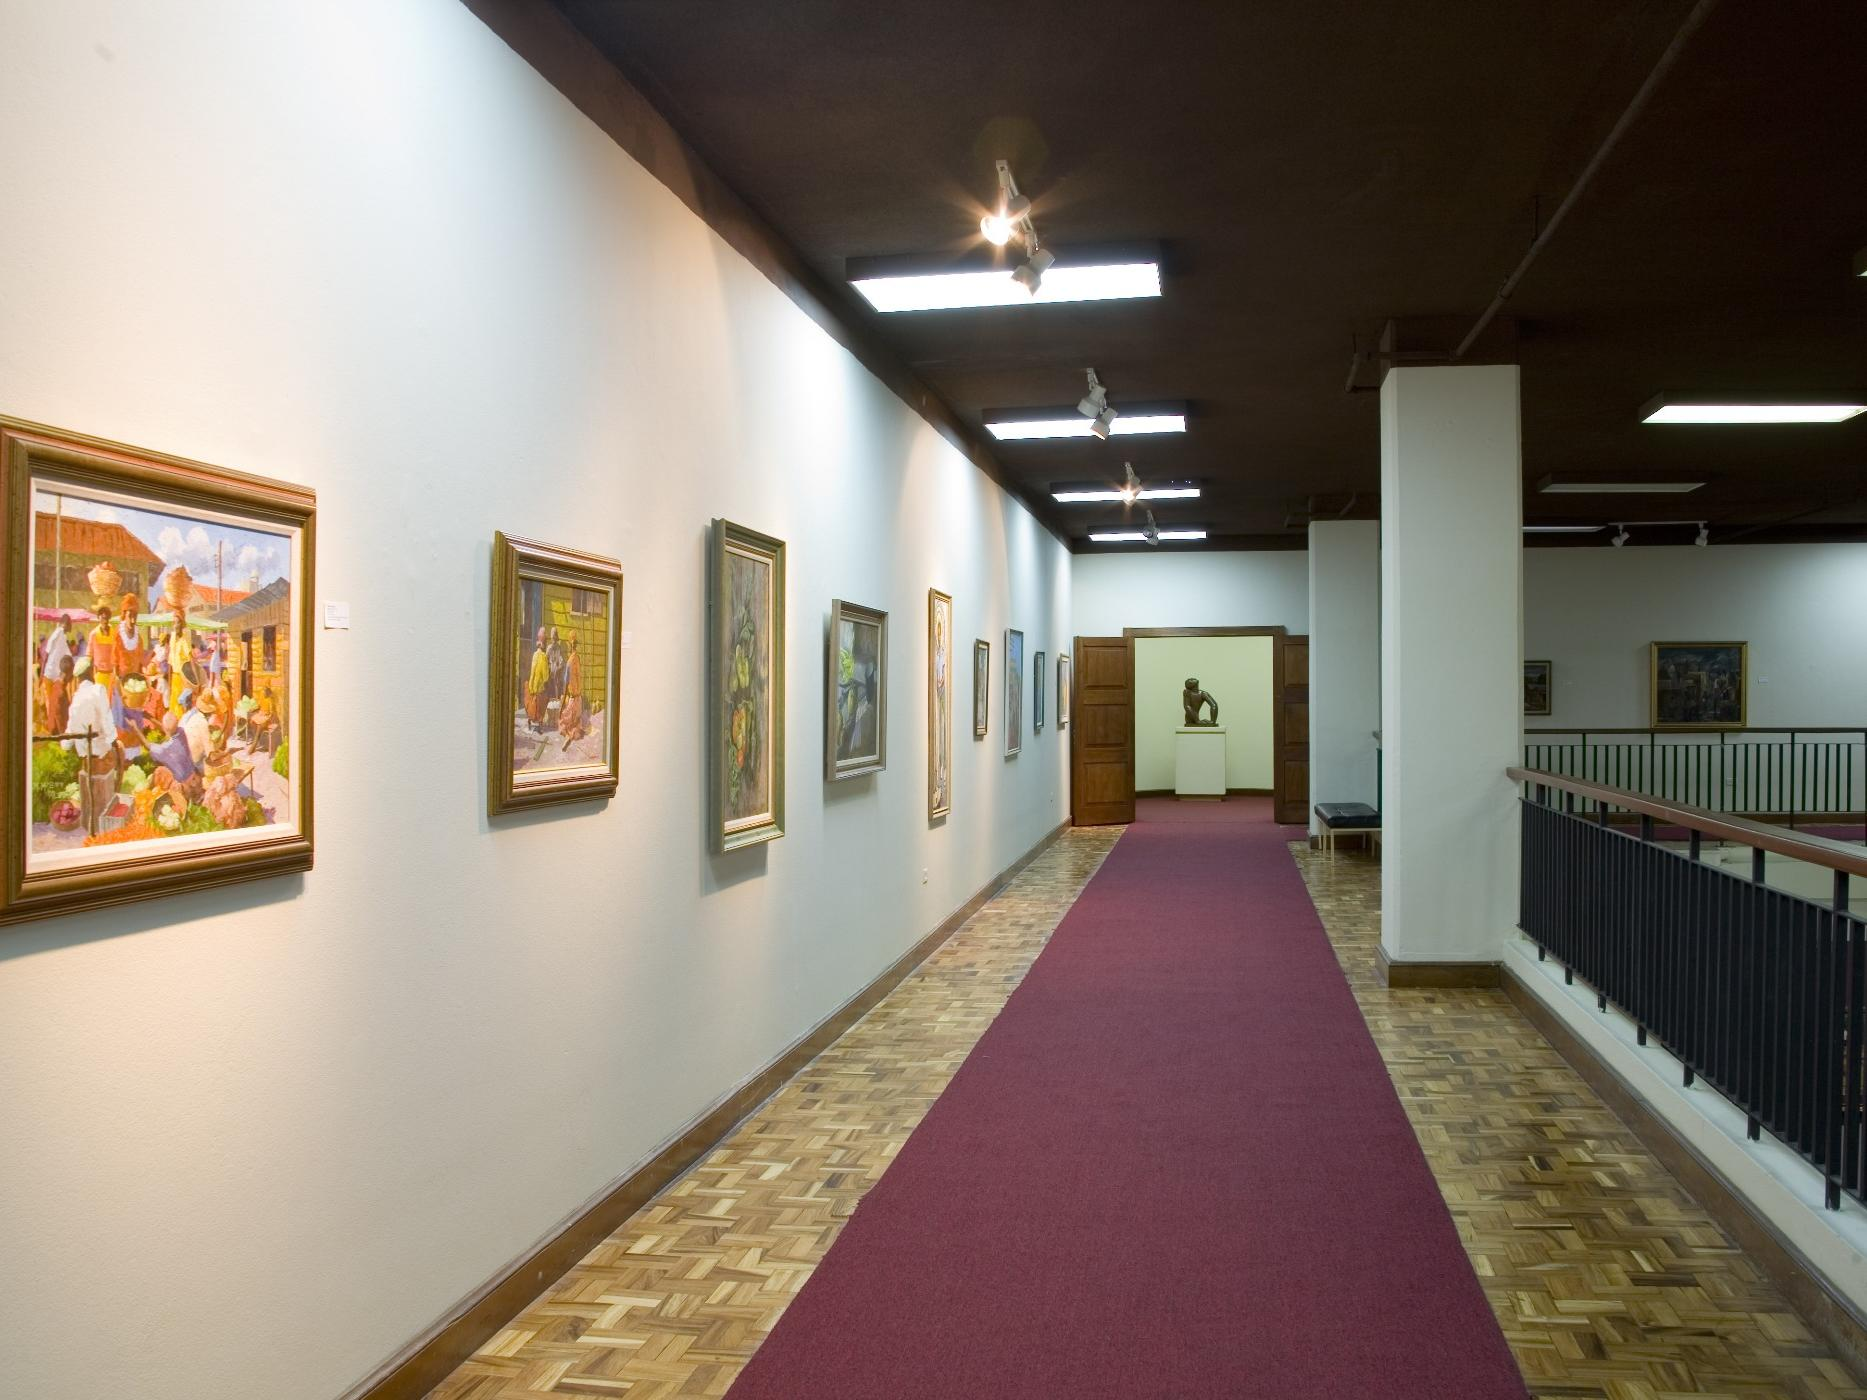 National Gallery of Jamaica